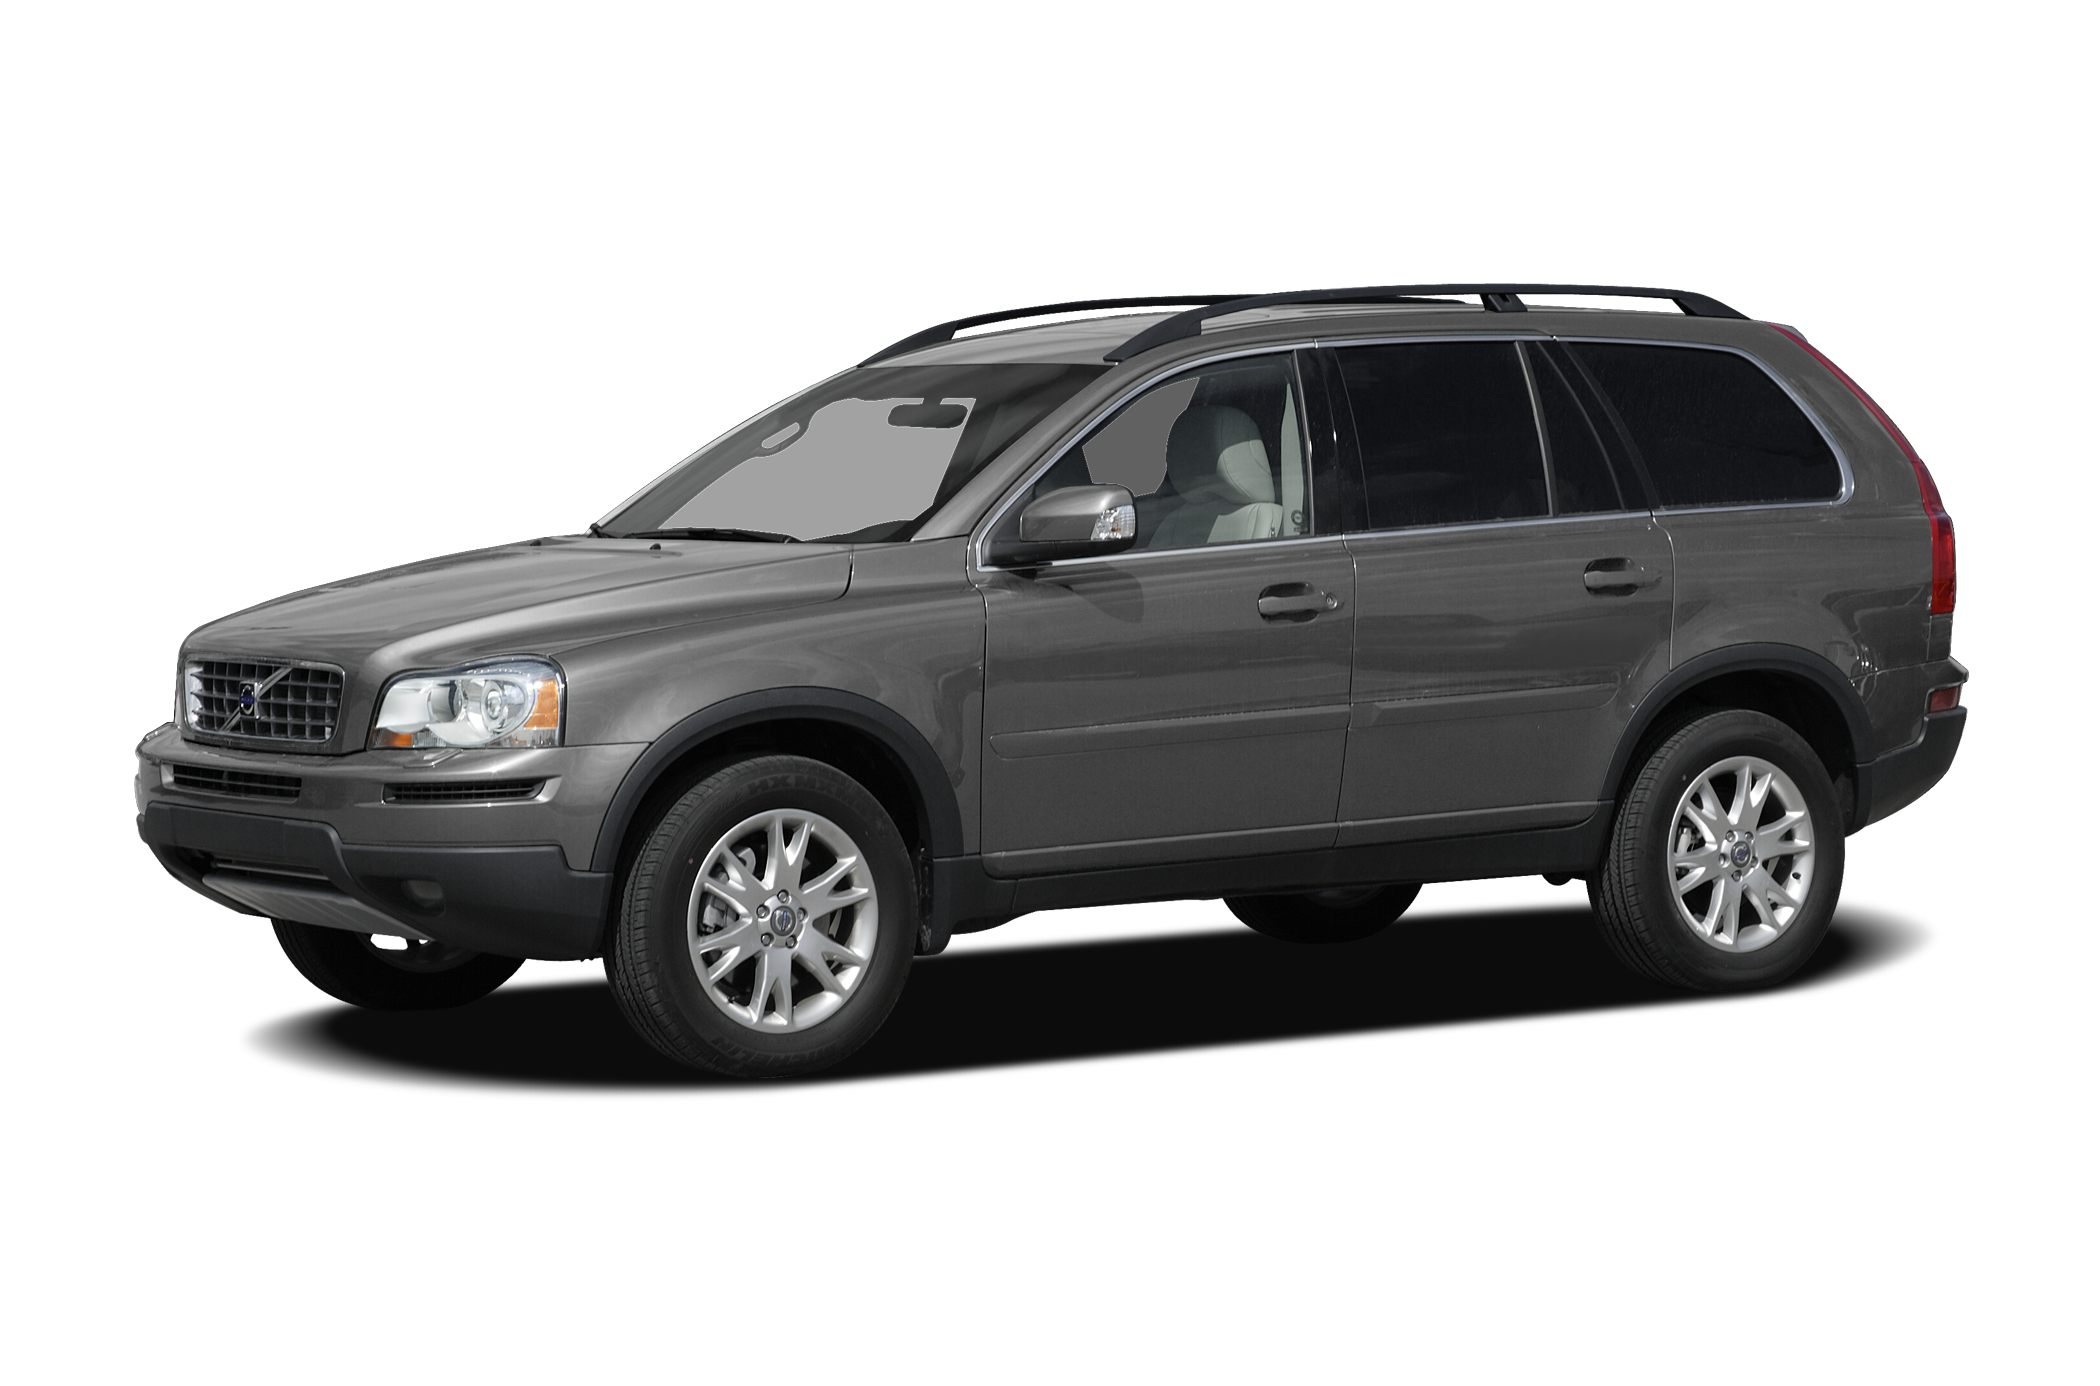 2007 Volvo XC90 V8 SUV for sale in Menomonie for $13,995 with 124,229 miles.